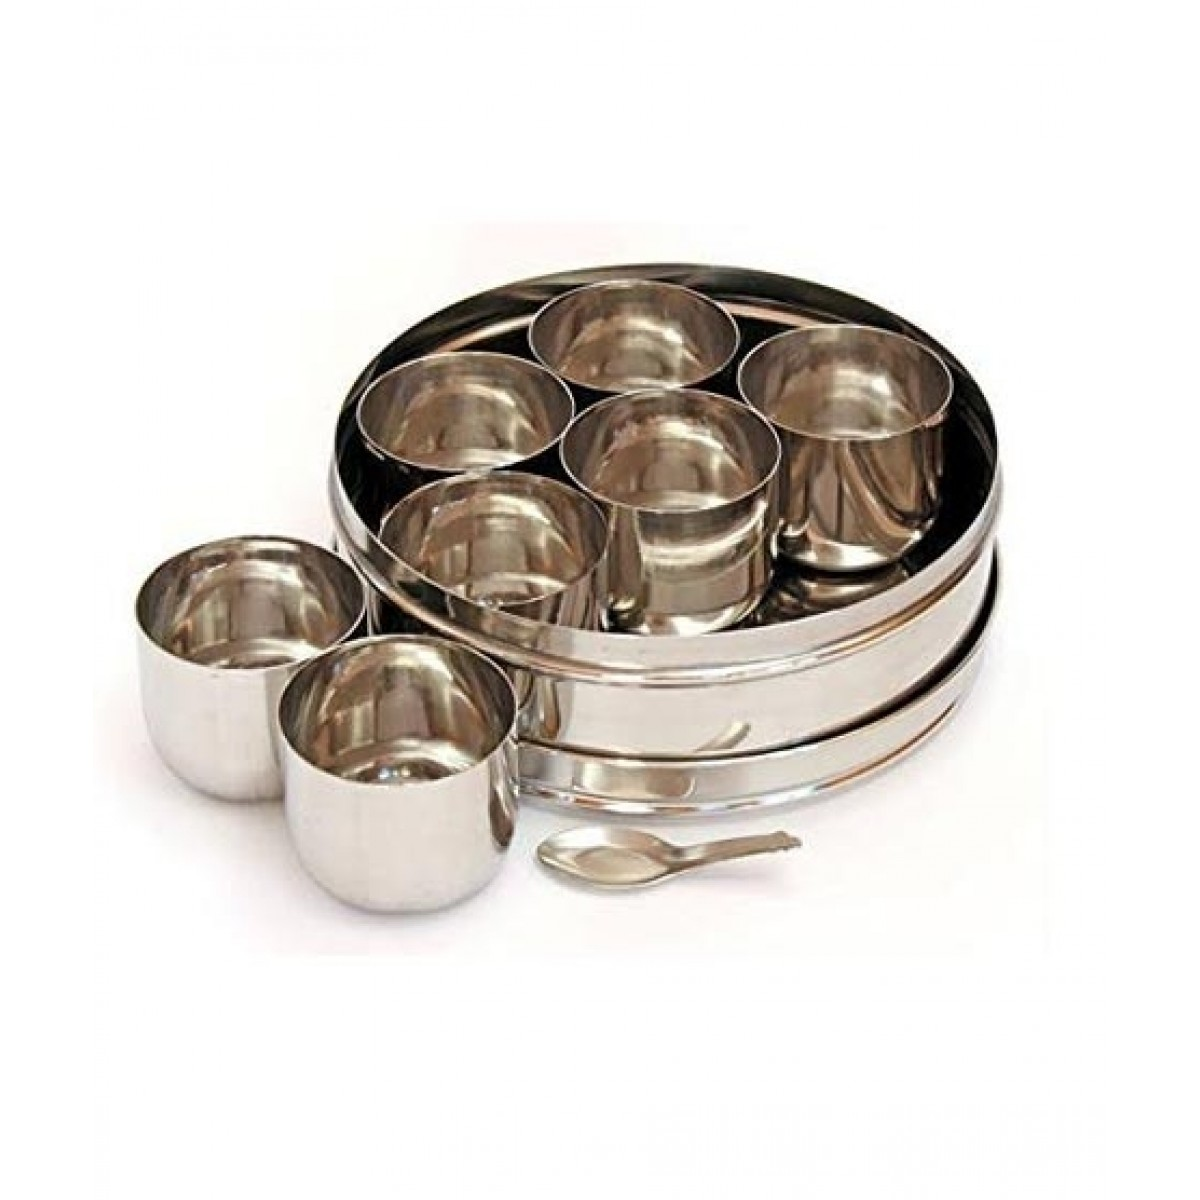 Hakimi Steel Stainless Steel Spice Box Containers